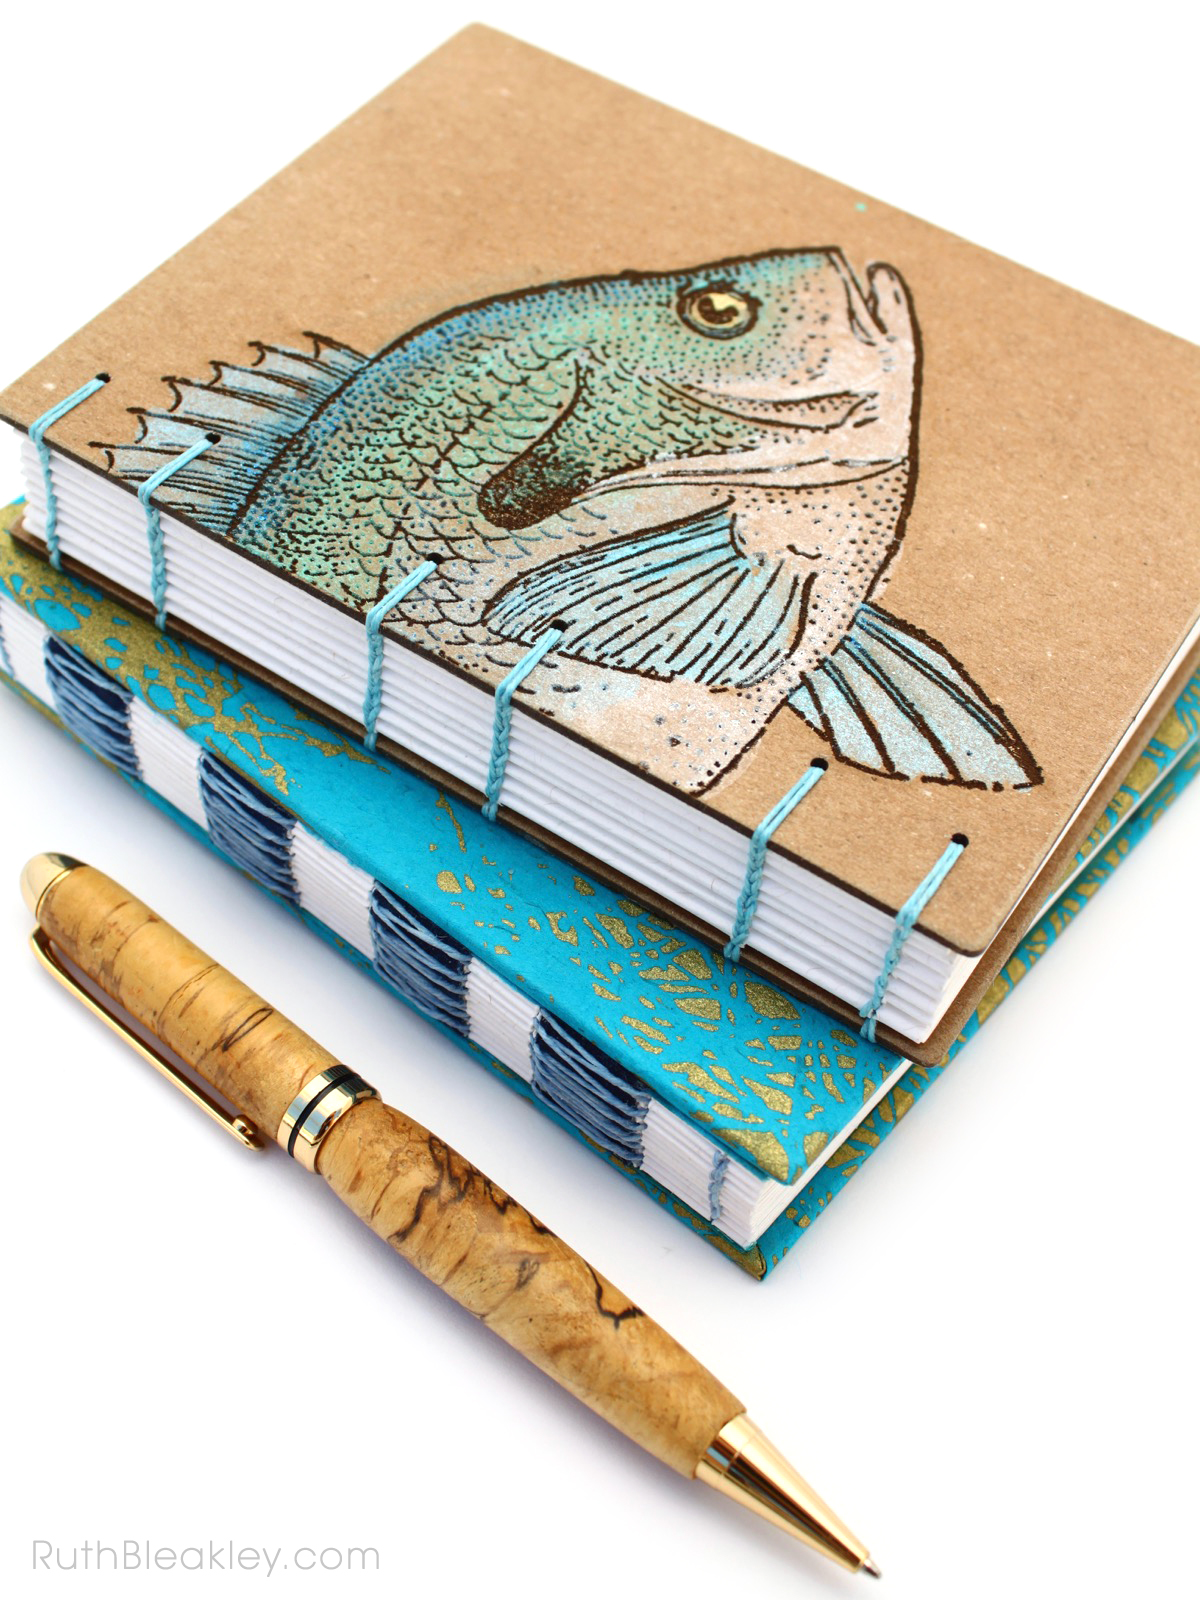 Handmade Journals by Florida Book Artist Ruth Bleakley who paints and sews them